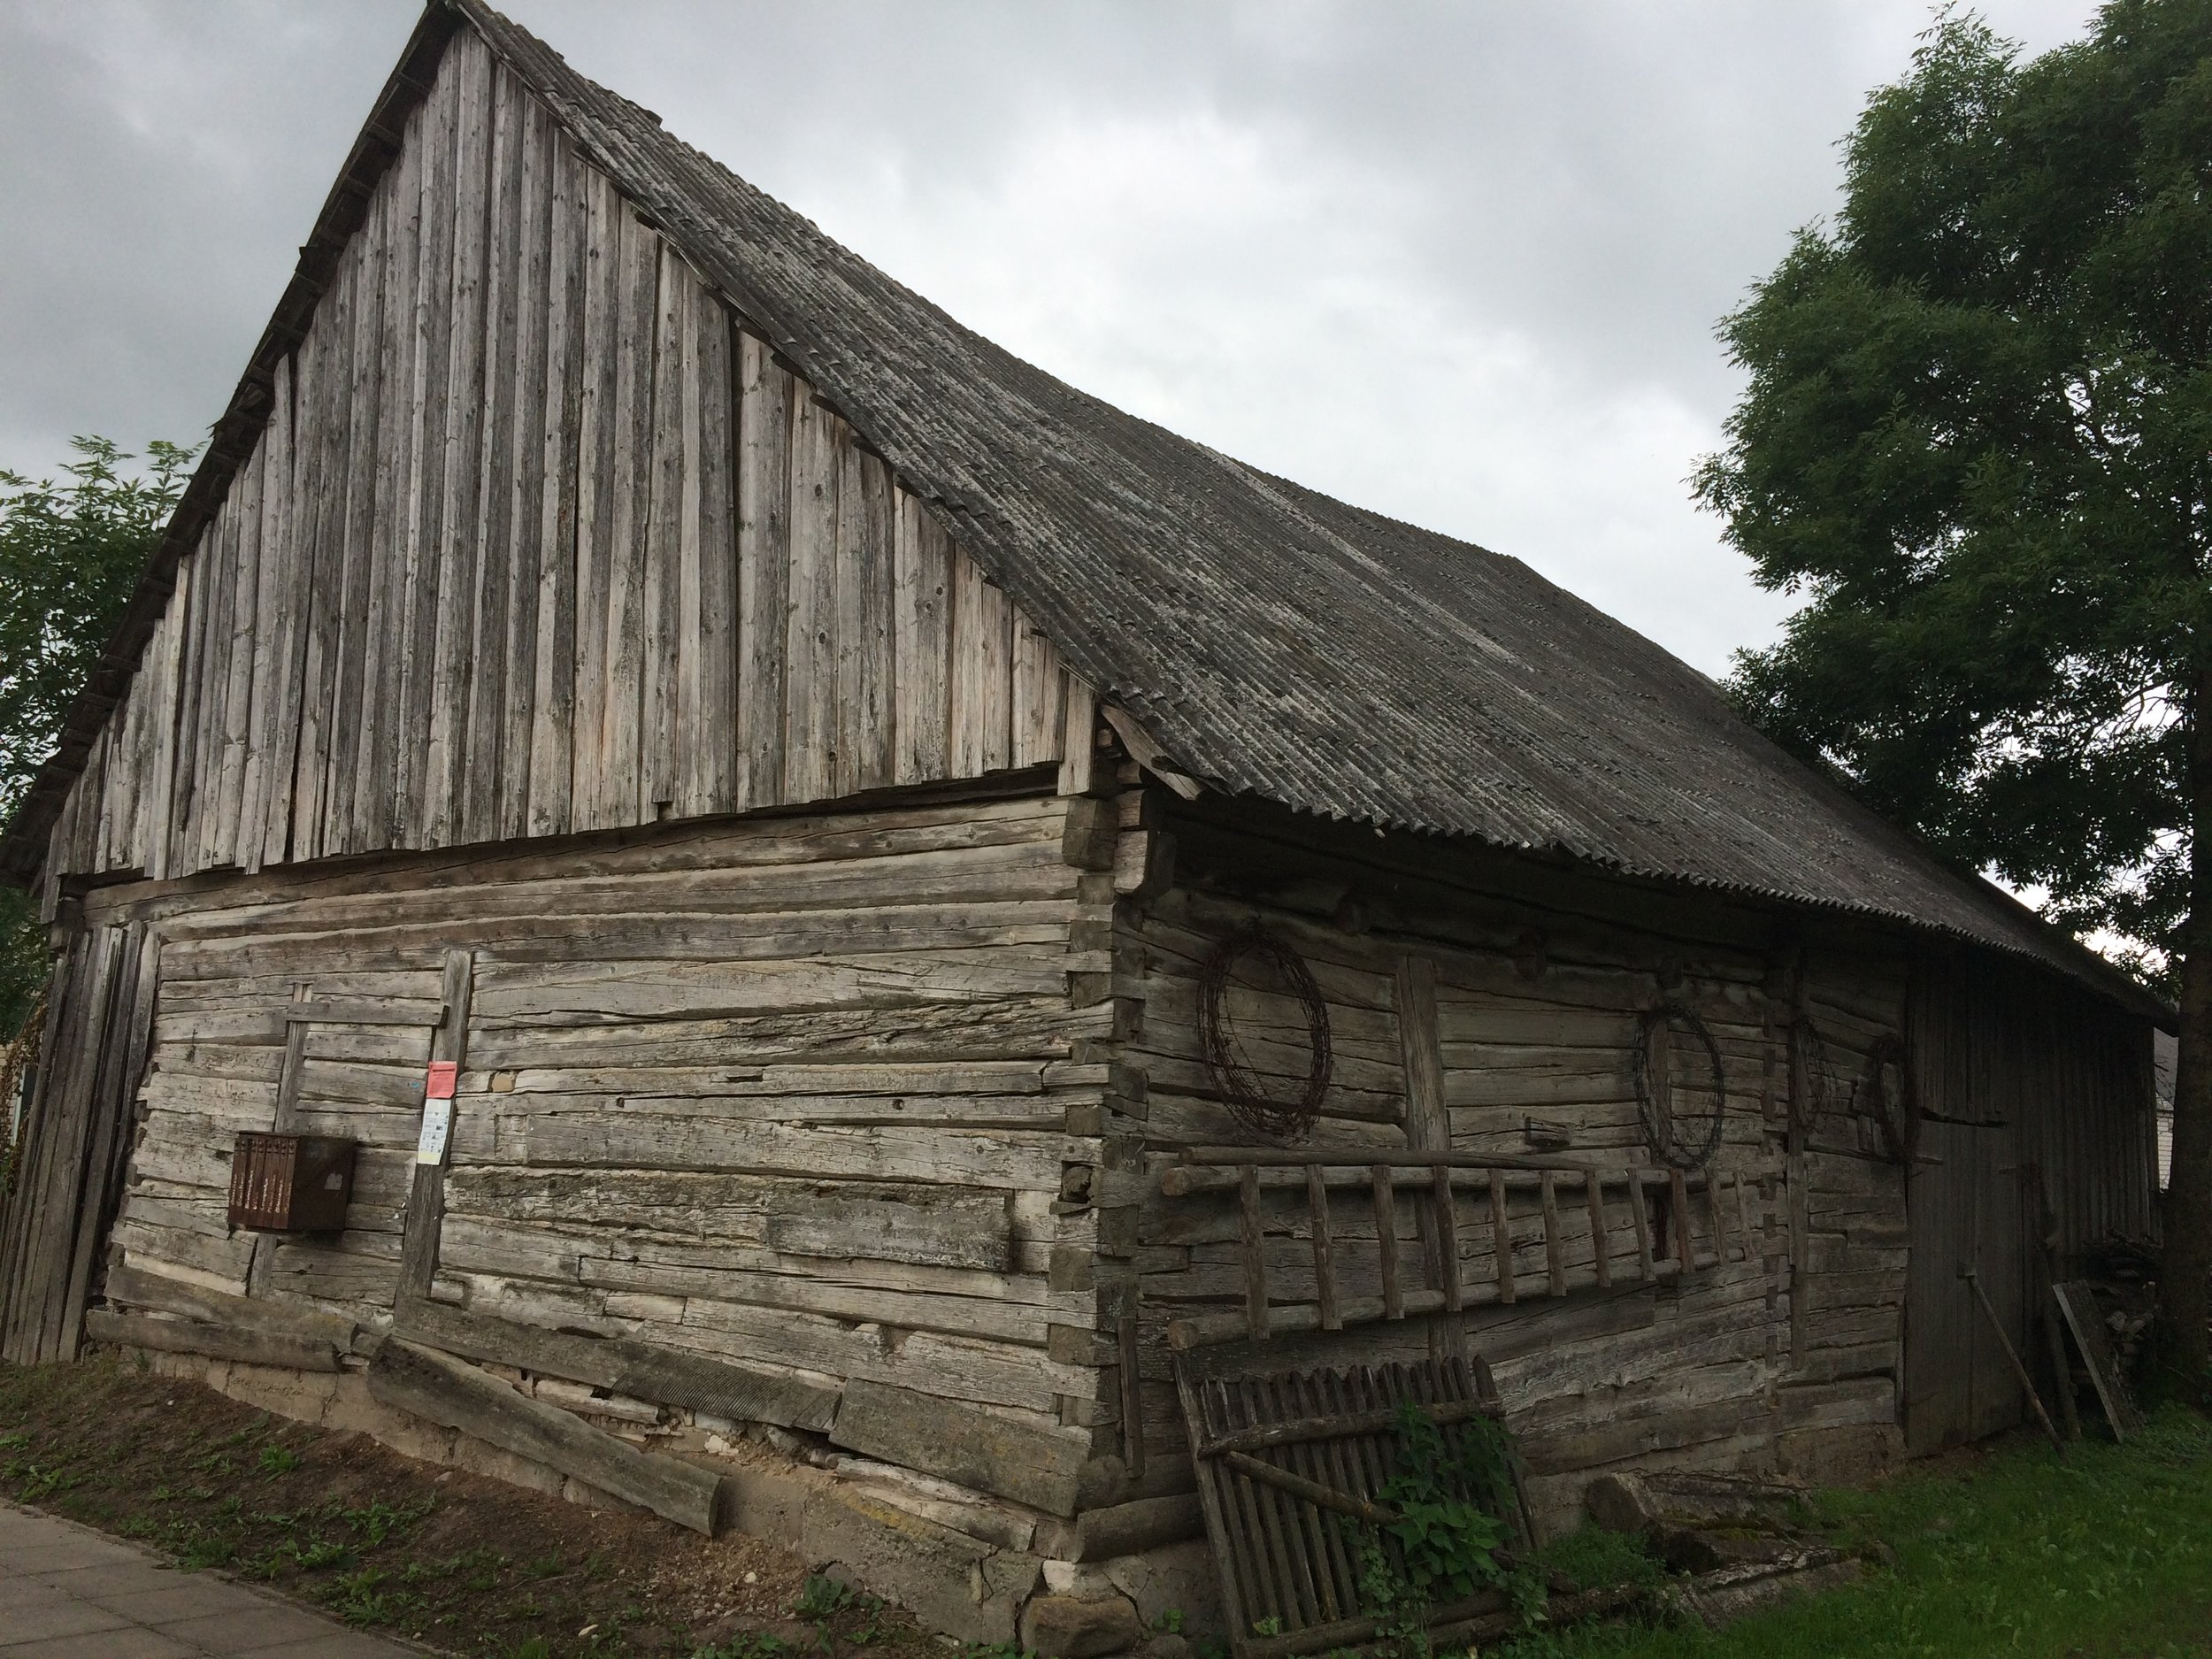 This old barn may have been here when my family lived in Batakiai.